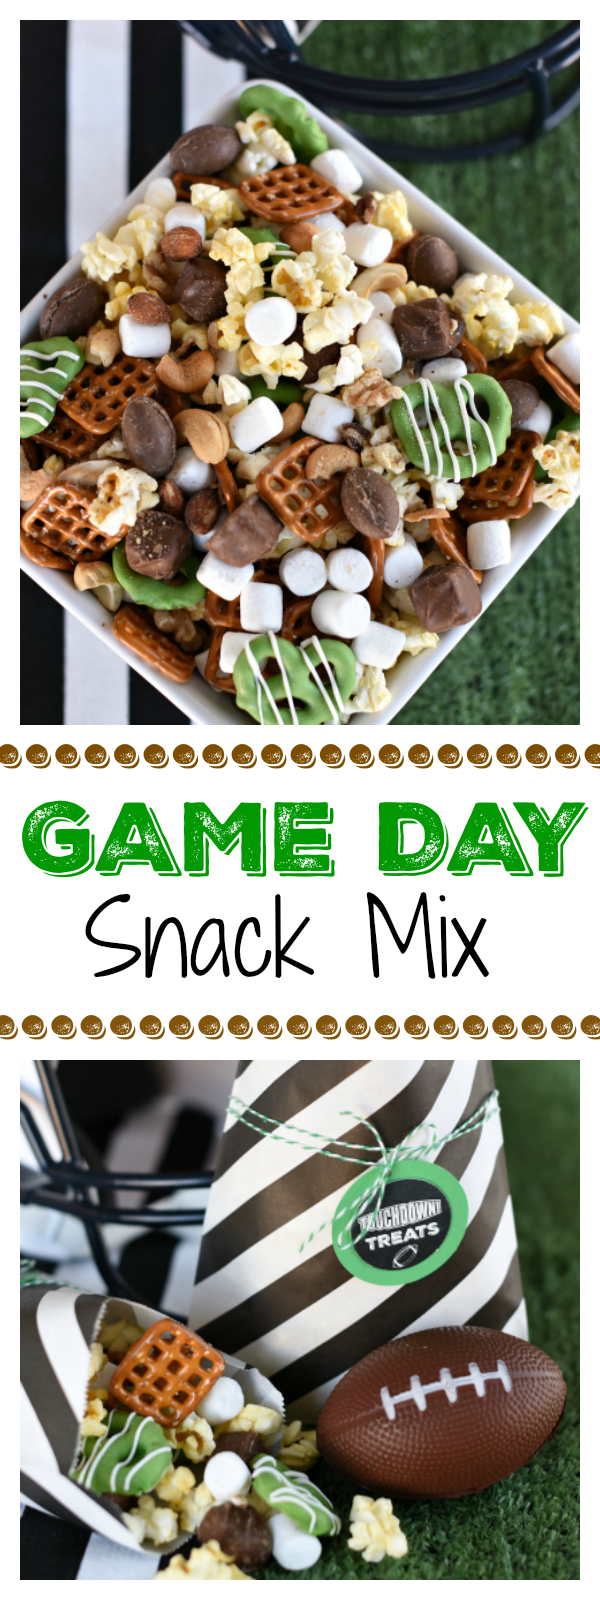 Game Day Snacks-Great Snack Ideas for a Football Party! You will fall in love with this yummy game day snack mix. So simple to make and so tasty you will want to have plenty on hand! #gamedaysnacks #gamedaysnackmix #footballpartymix #footballpartyfood